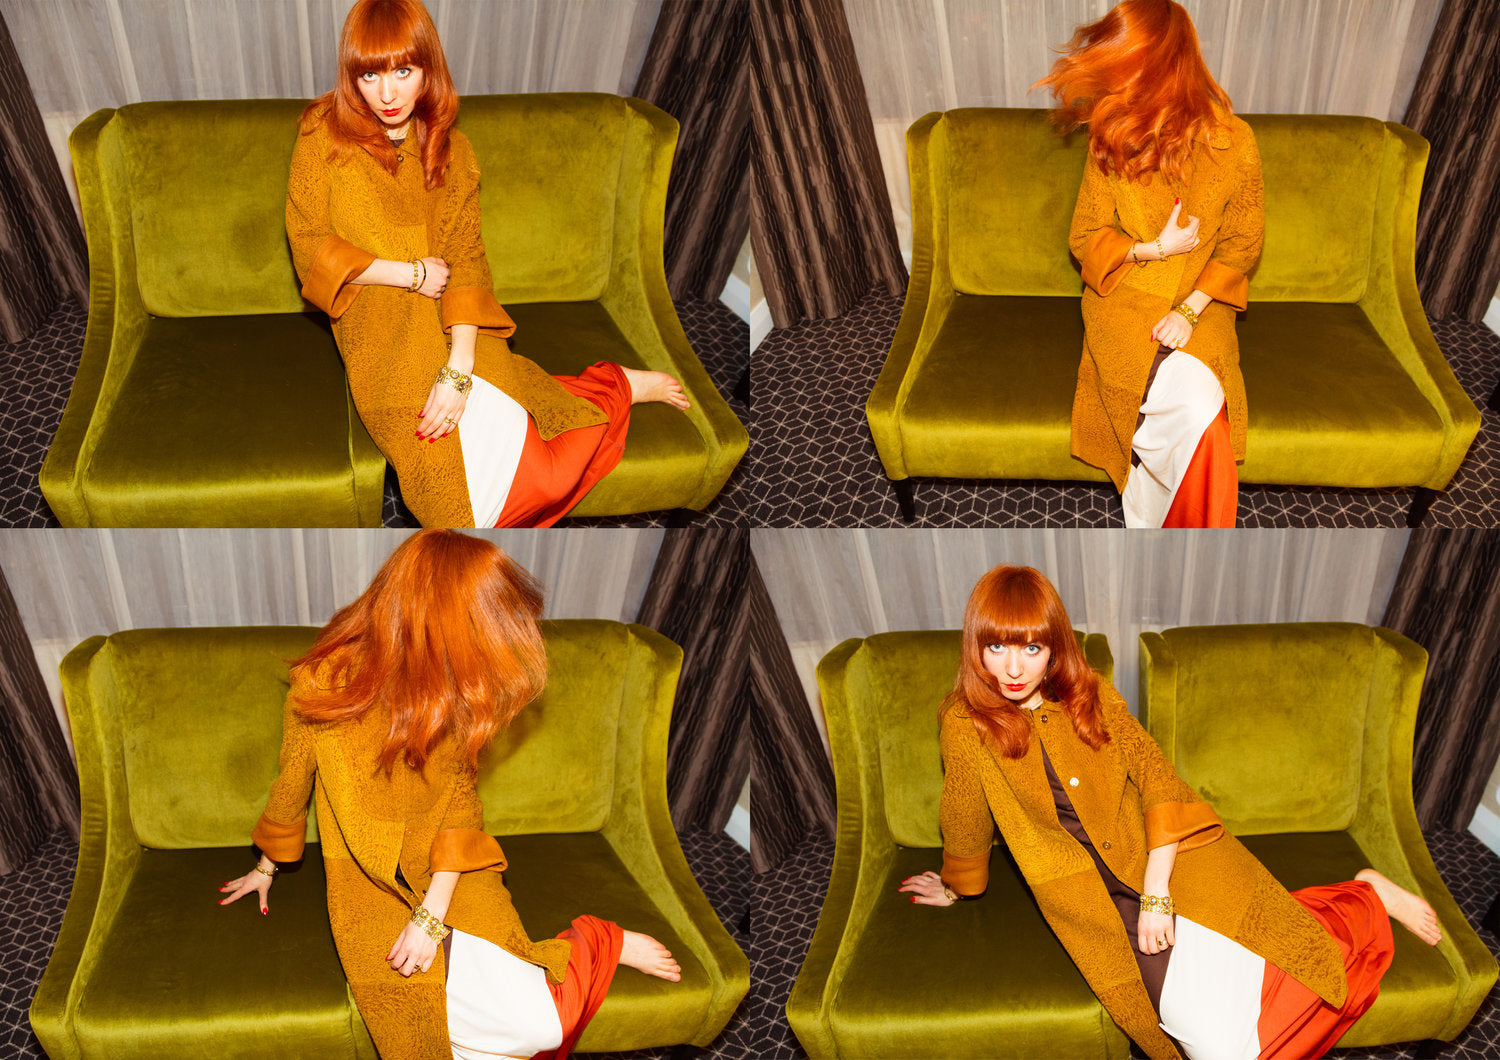 Melbourne Illustrator Kelly Thompson redhead on velvet couch at the Grand Mecure Hotel in Auckland. New Zealand Fashion Week